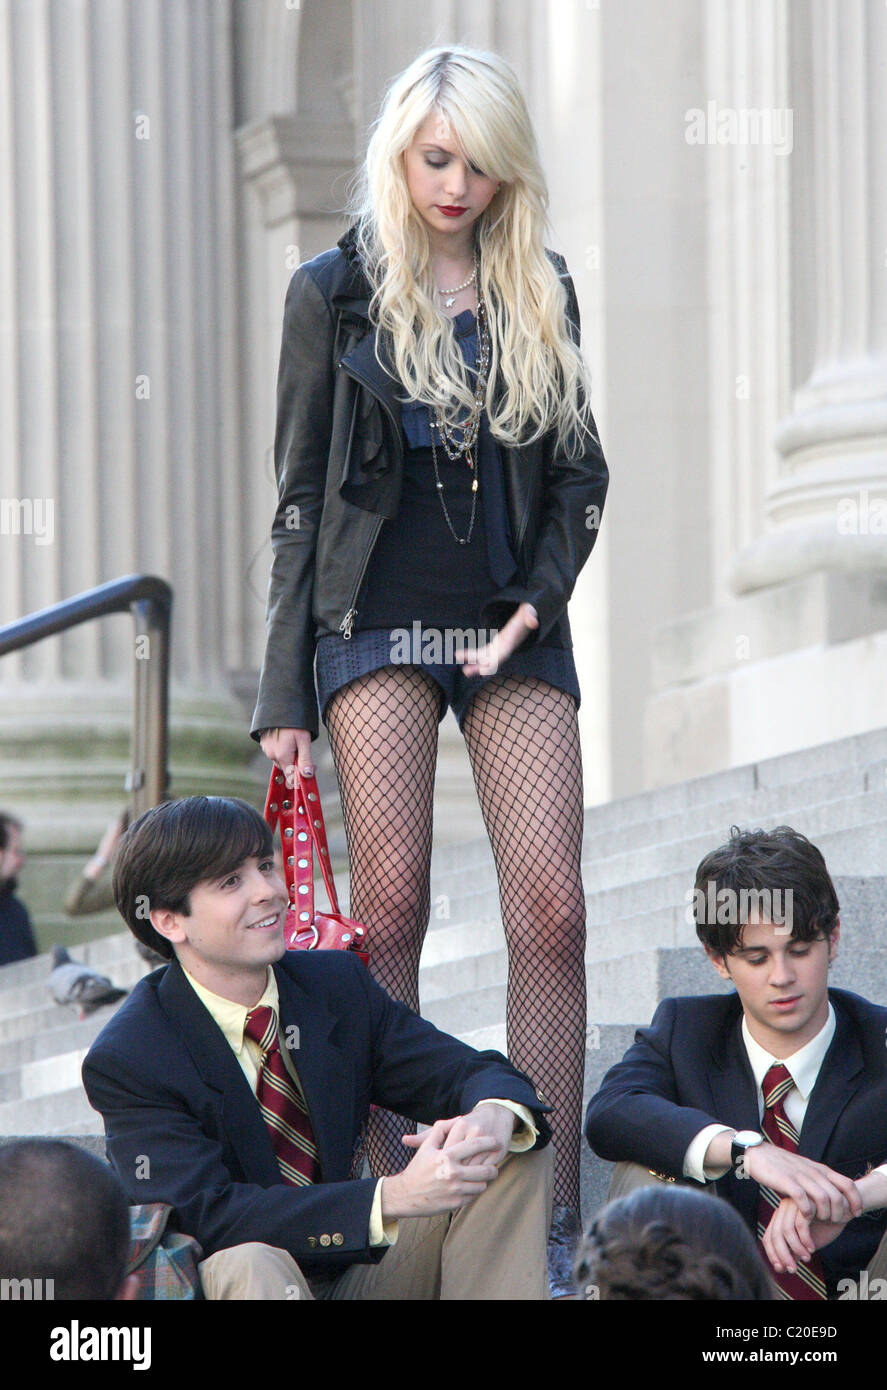 Taylor Momsen On The Set Of Gossip Girls Dressed In Fishnet Stockings And Leather Bikers Jacket New York City Usa